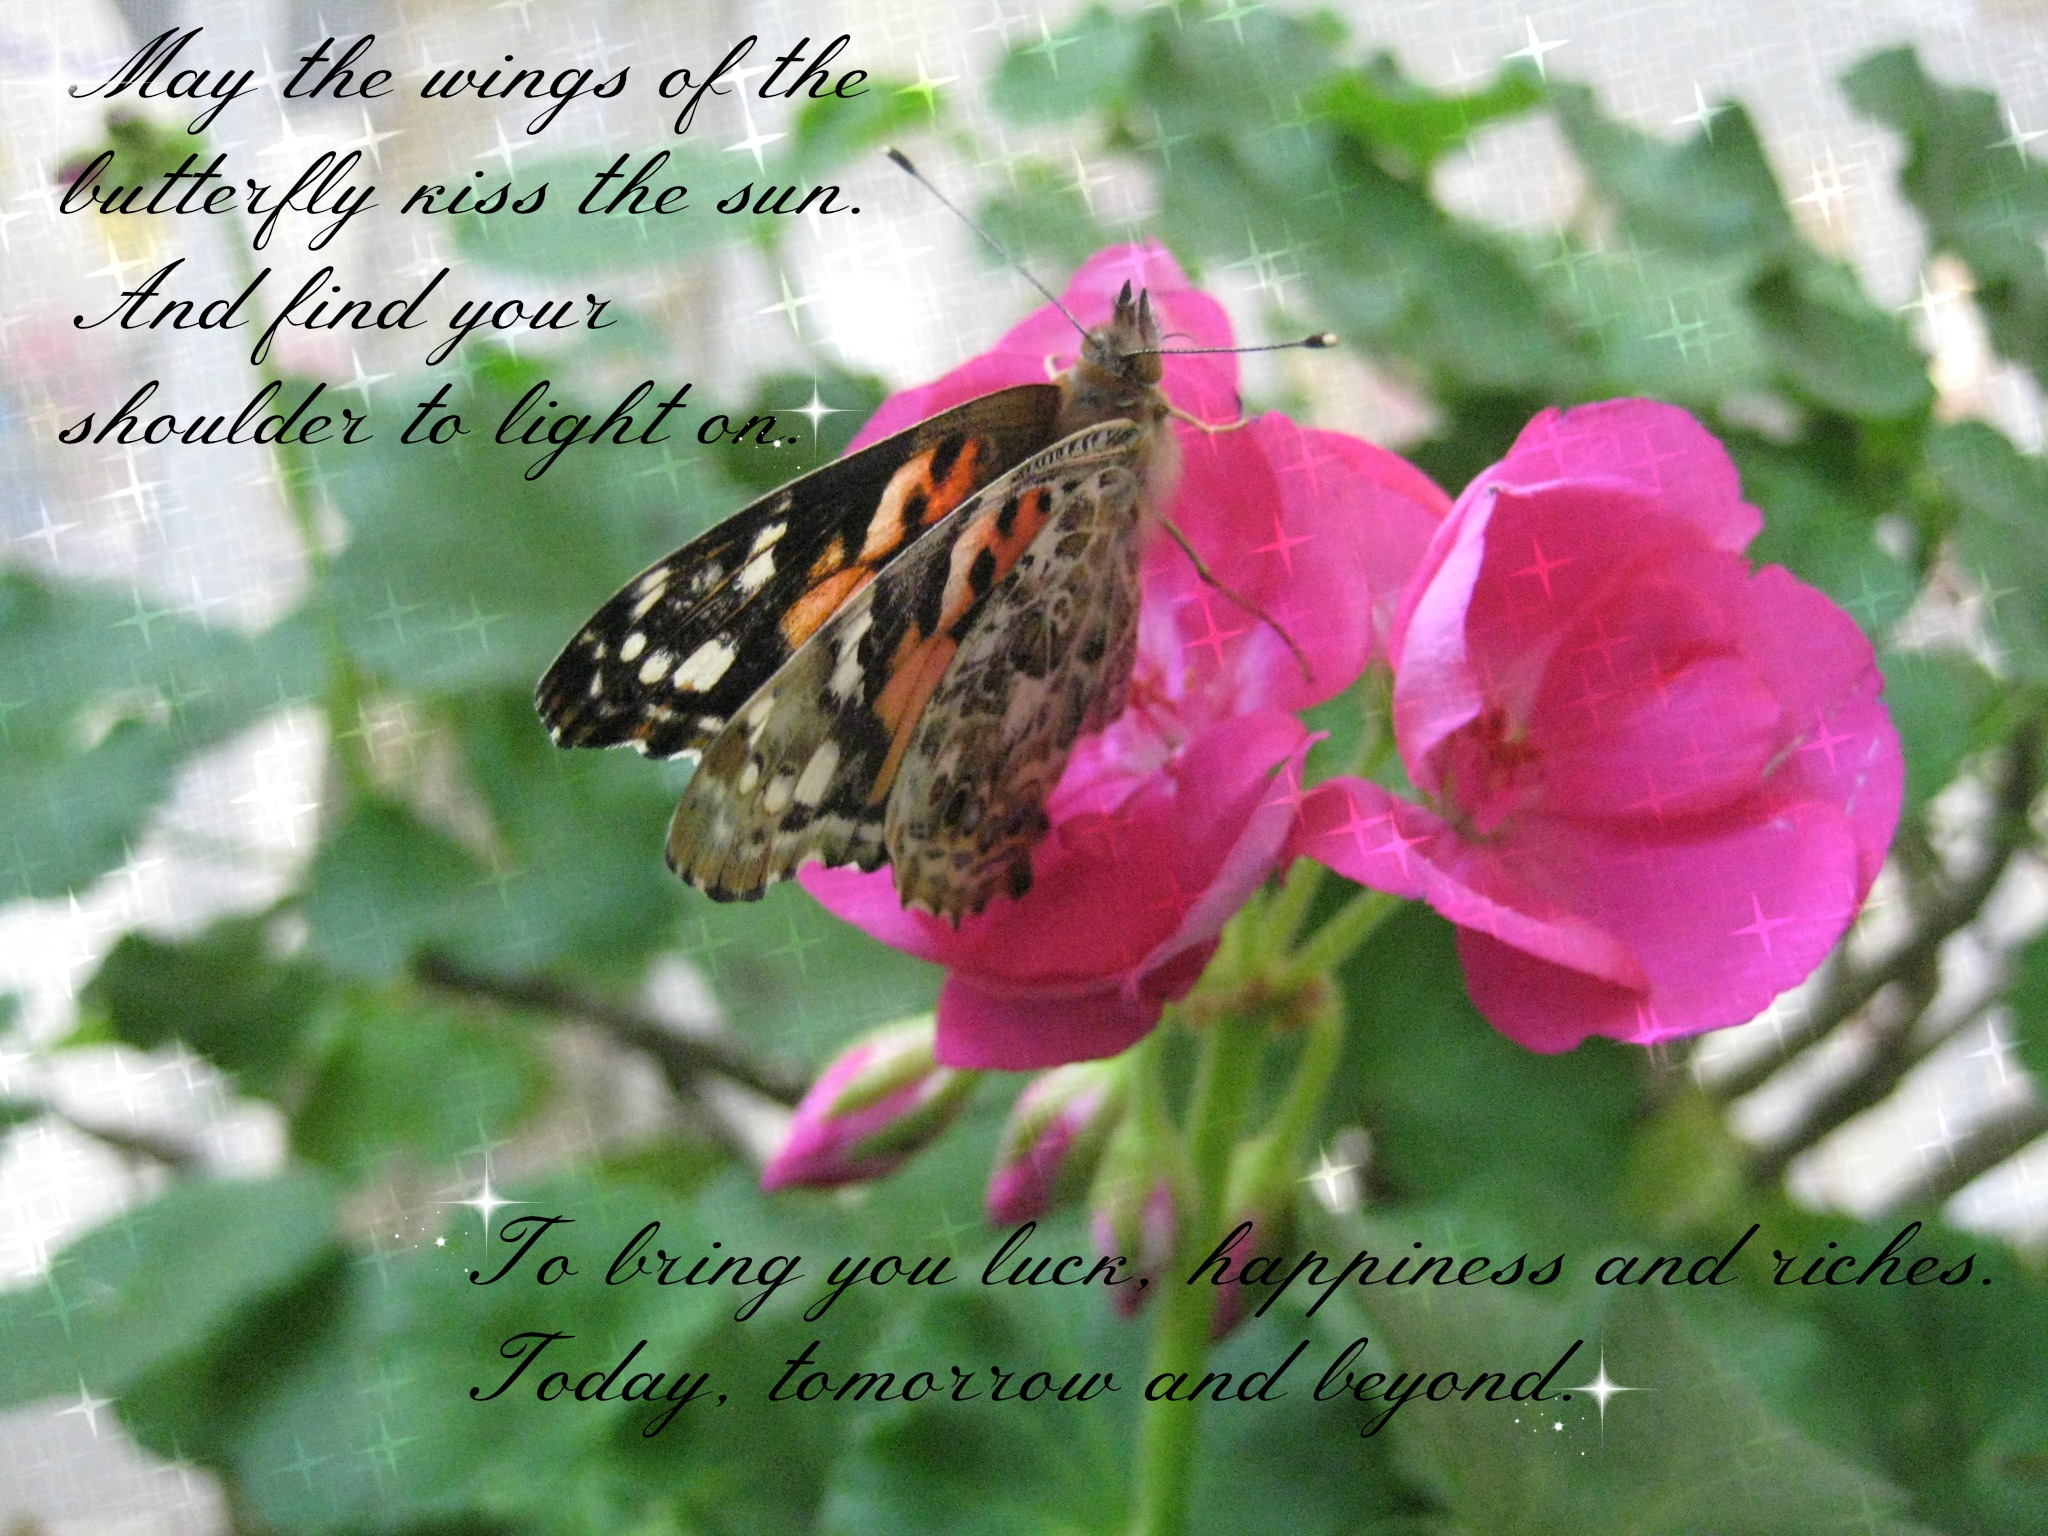 Butterfly poems and sayings an assortment of poems about butterflies may the wings of the butterfly kiss the sun and find your shoulder to light izmirmasajfo Gallery